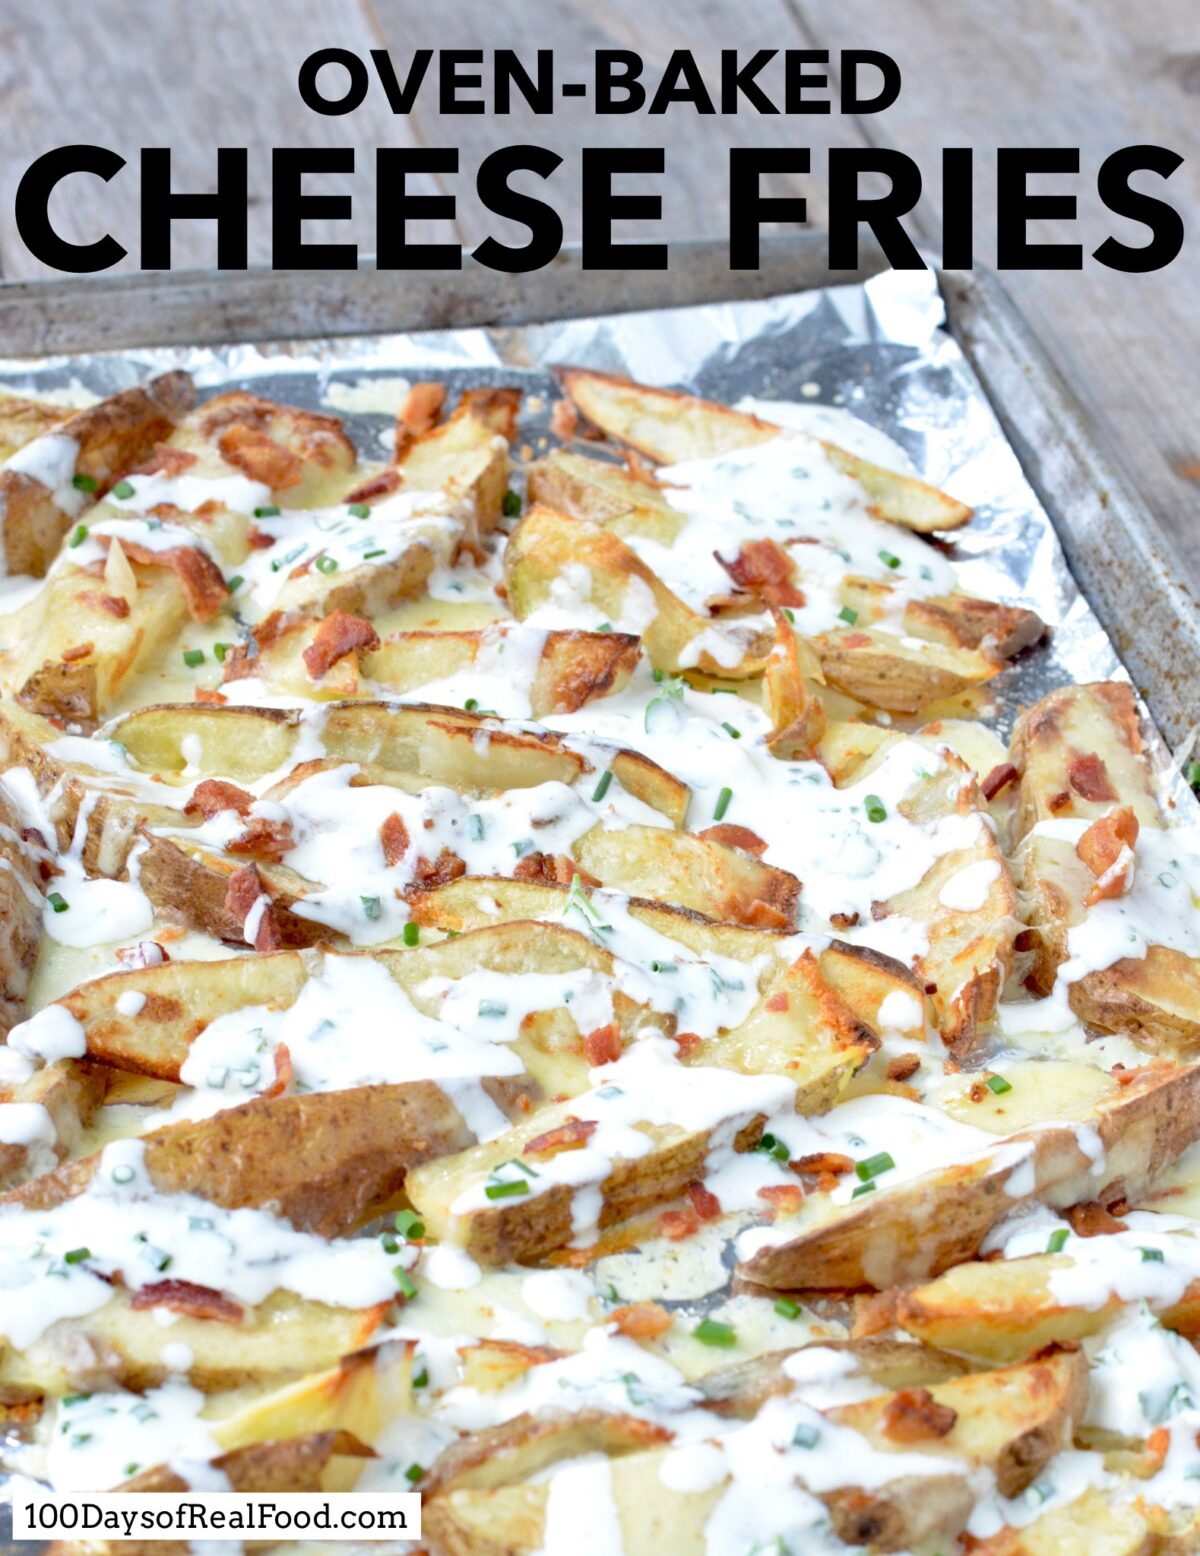 Sliced potatoes topped with cheese, bacon, and homemade ranch dressing on a baking sheet.